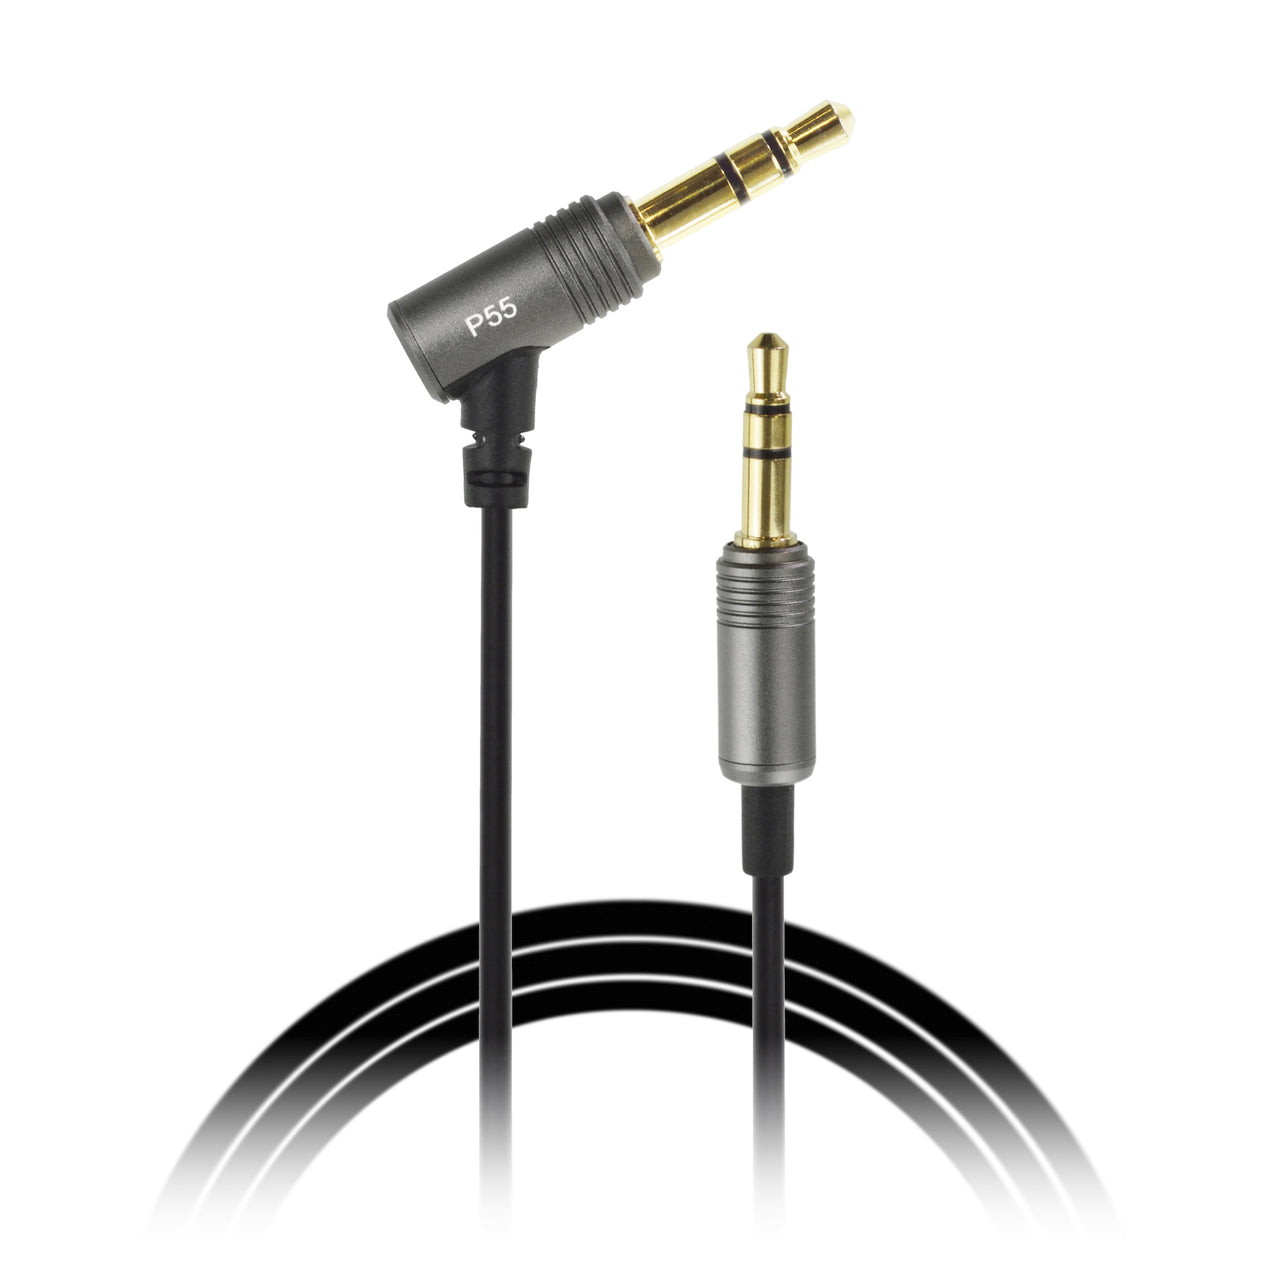 SoundMAGIC Audio Cable for Vento P55  – 1.2m - SoundMAGICheadphones.com